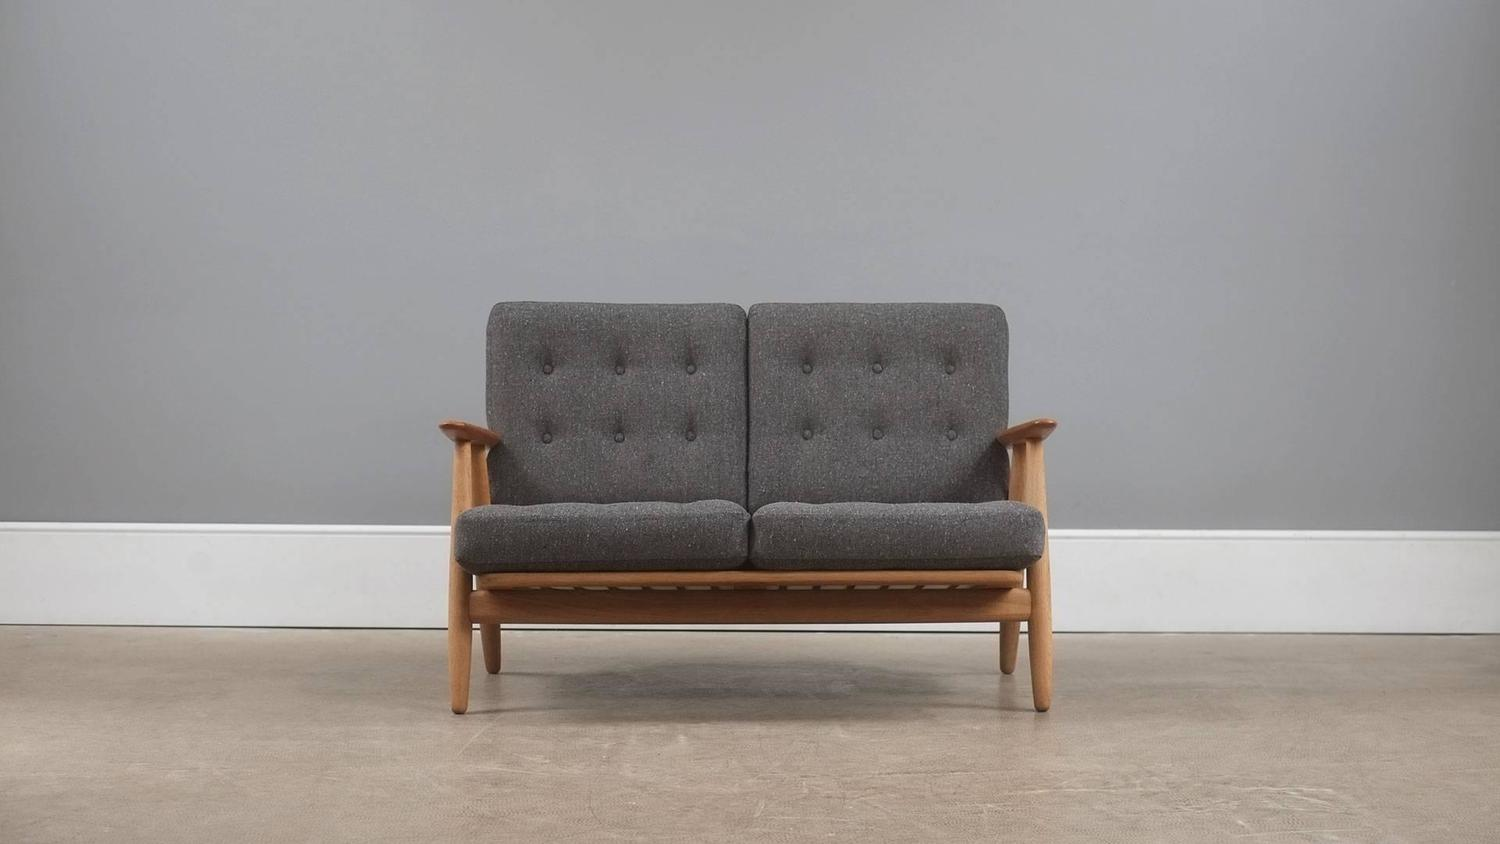 Hans wegner ge240 cigar sofa for sale at 1stdibs for Sofa 75 cm tief